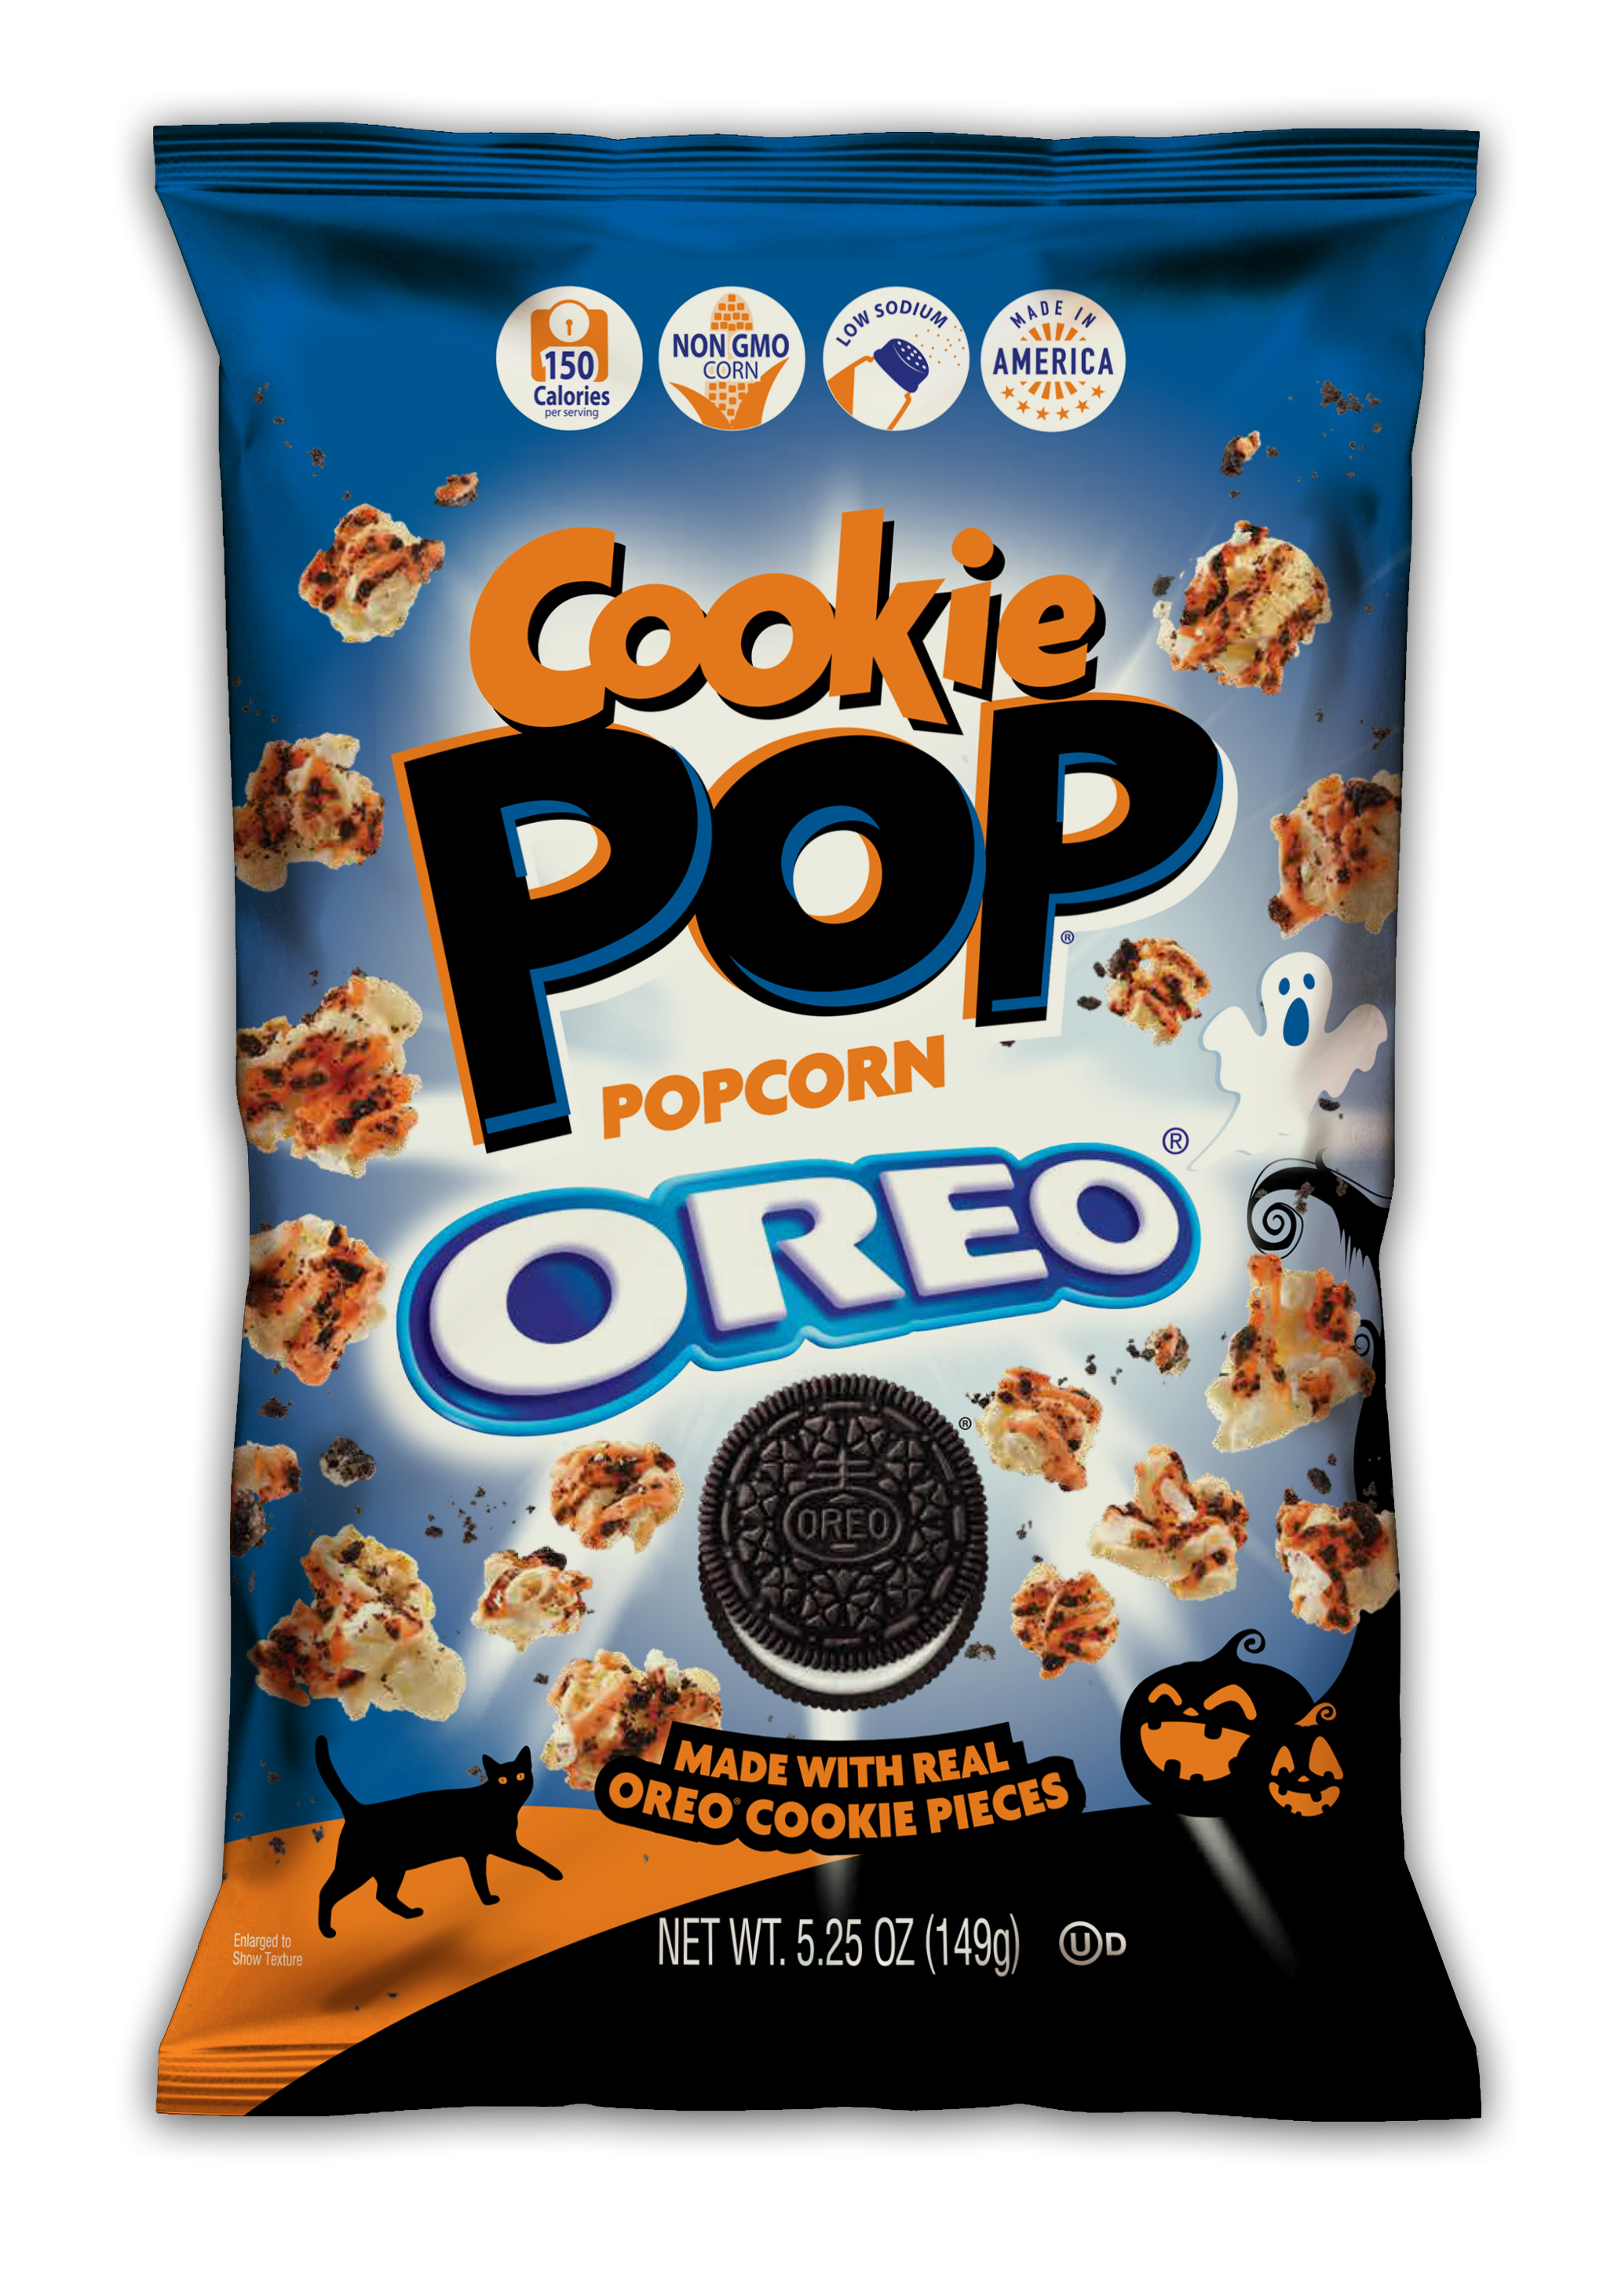 THE RETURN OF COOKIE POP'S SPOOKTACULAR SPECIAL EDITION HALLOWEEN COOKIE POP OREO® POPCORN MADE WITH REAL COOKIE PIECES, BACK BY POPULAR DEMAND